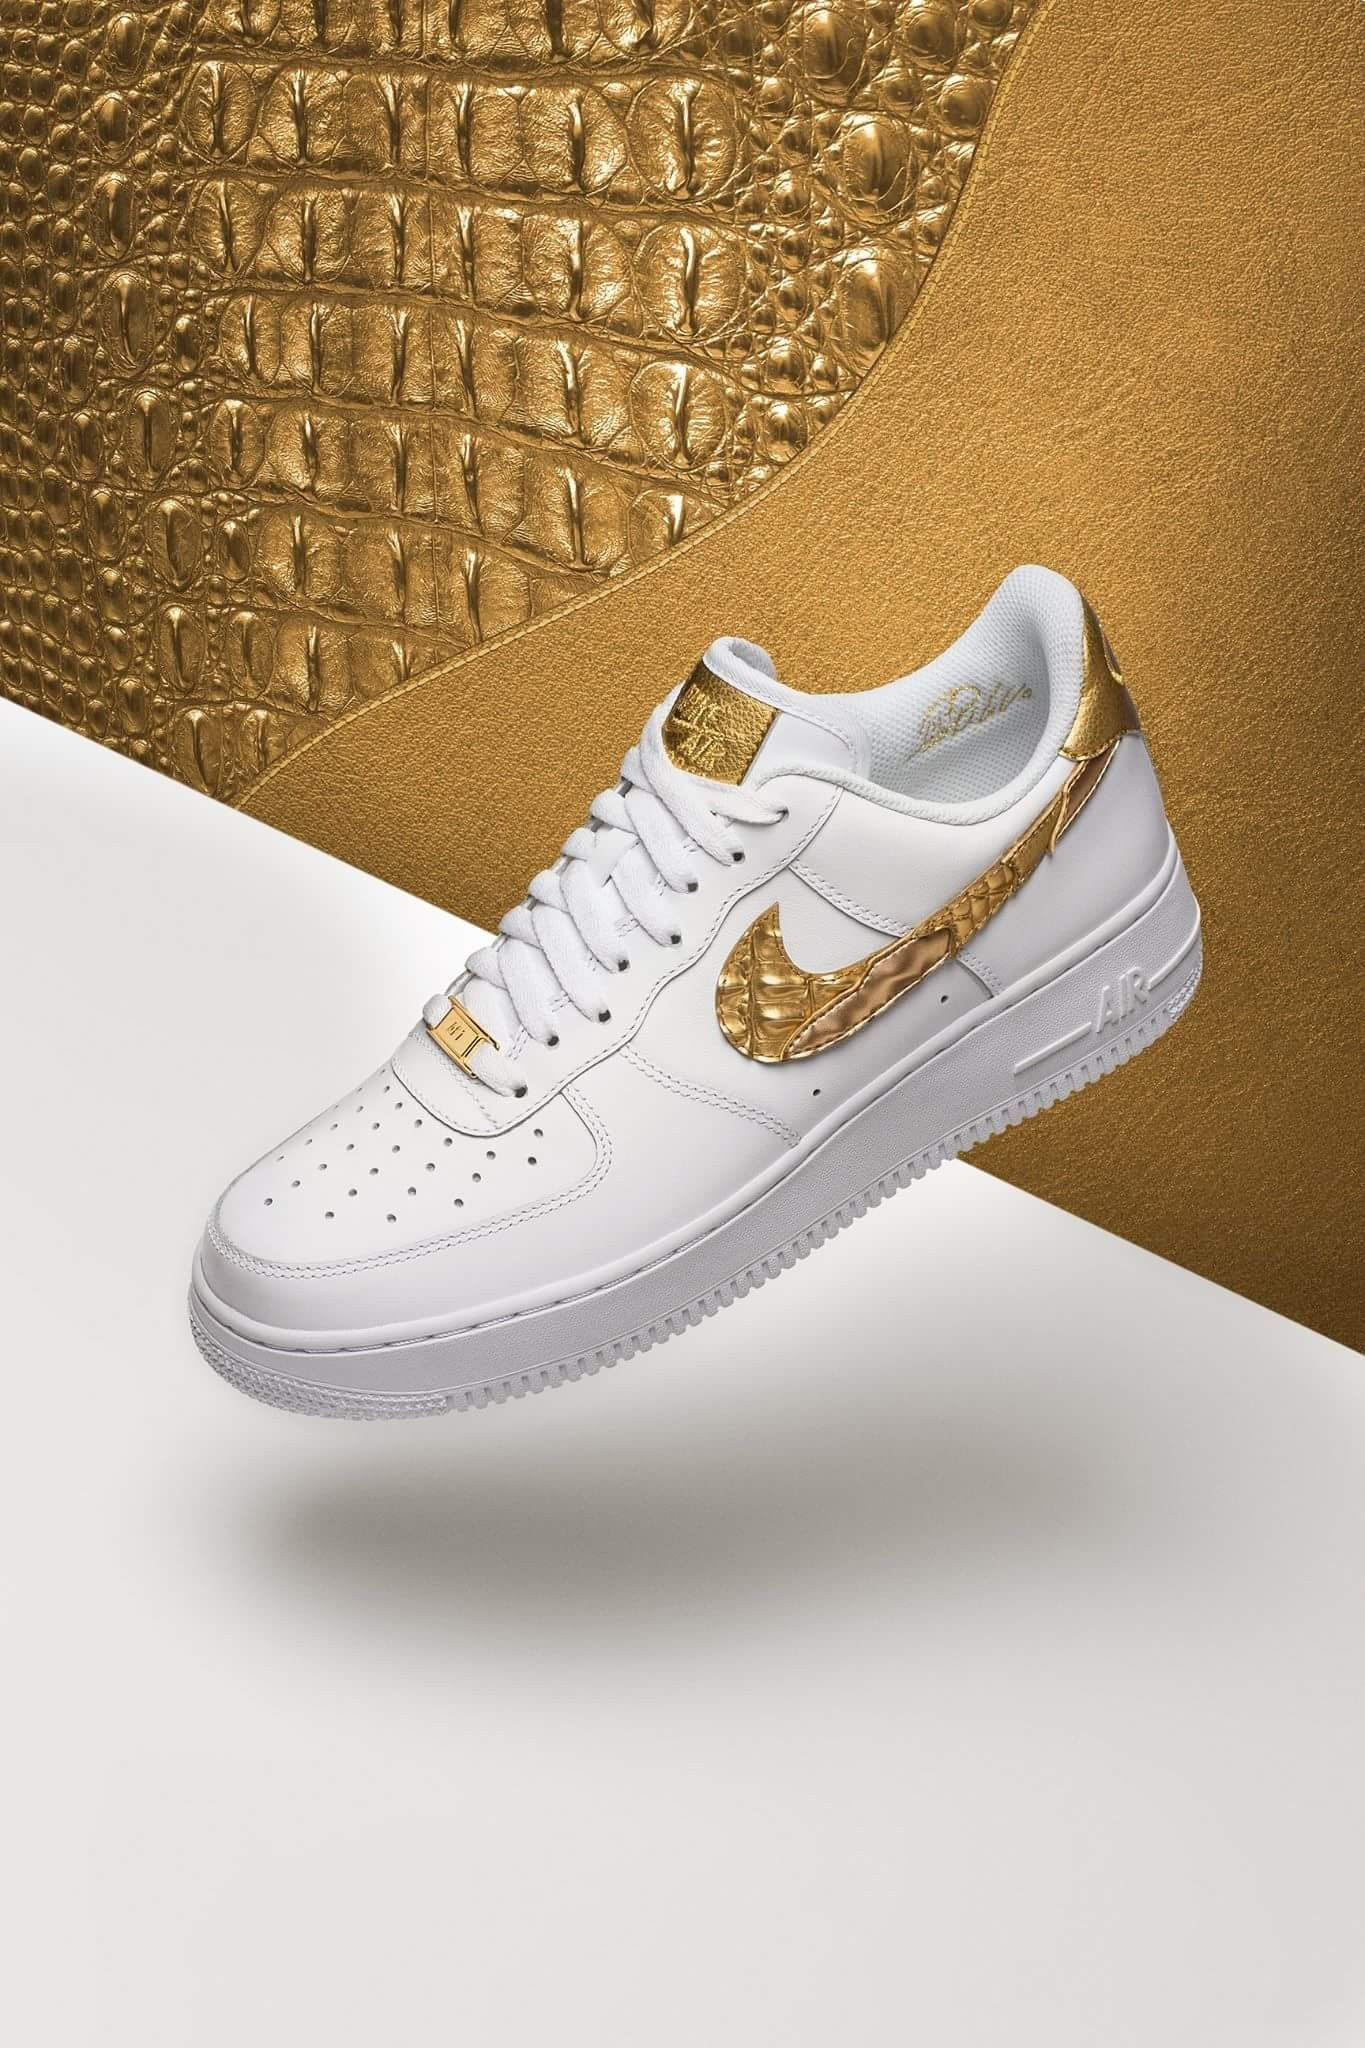 32c8c46485a8cb My AF1 CR7 s launch today on the Nike SNEAKRS app!  AF1  CR7 Go to Nike .com SNEAKRS